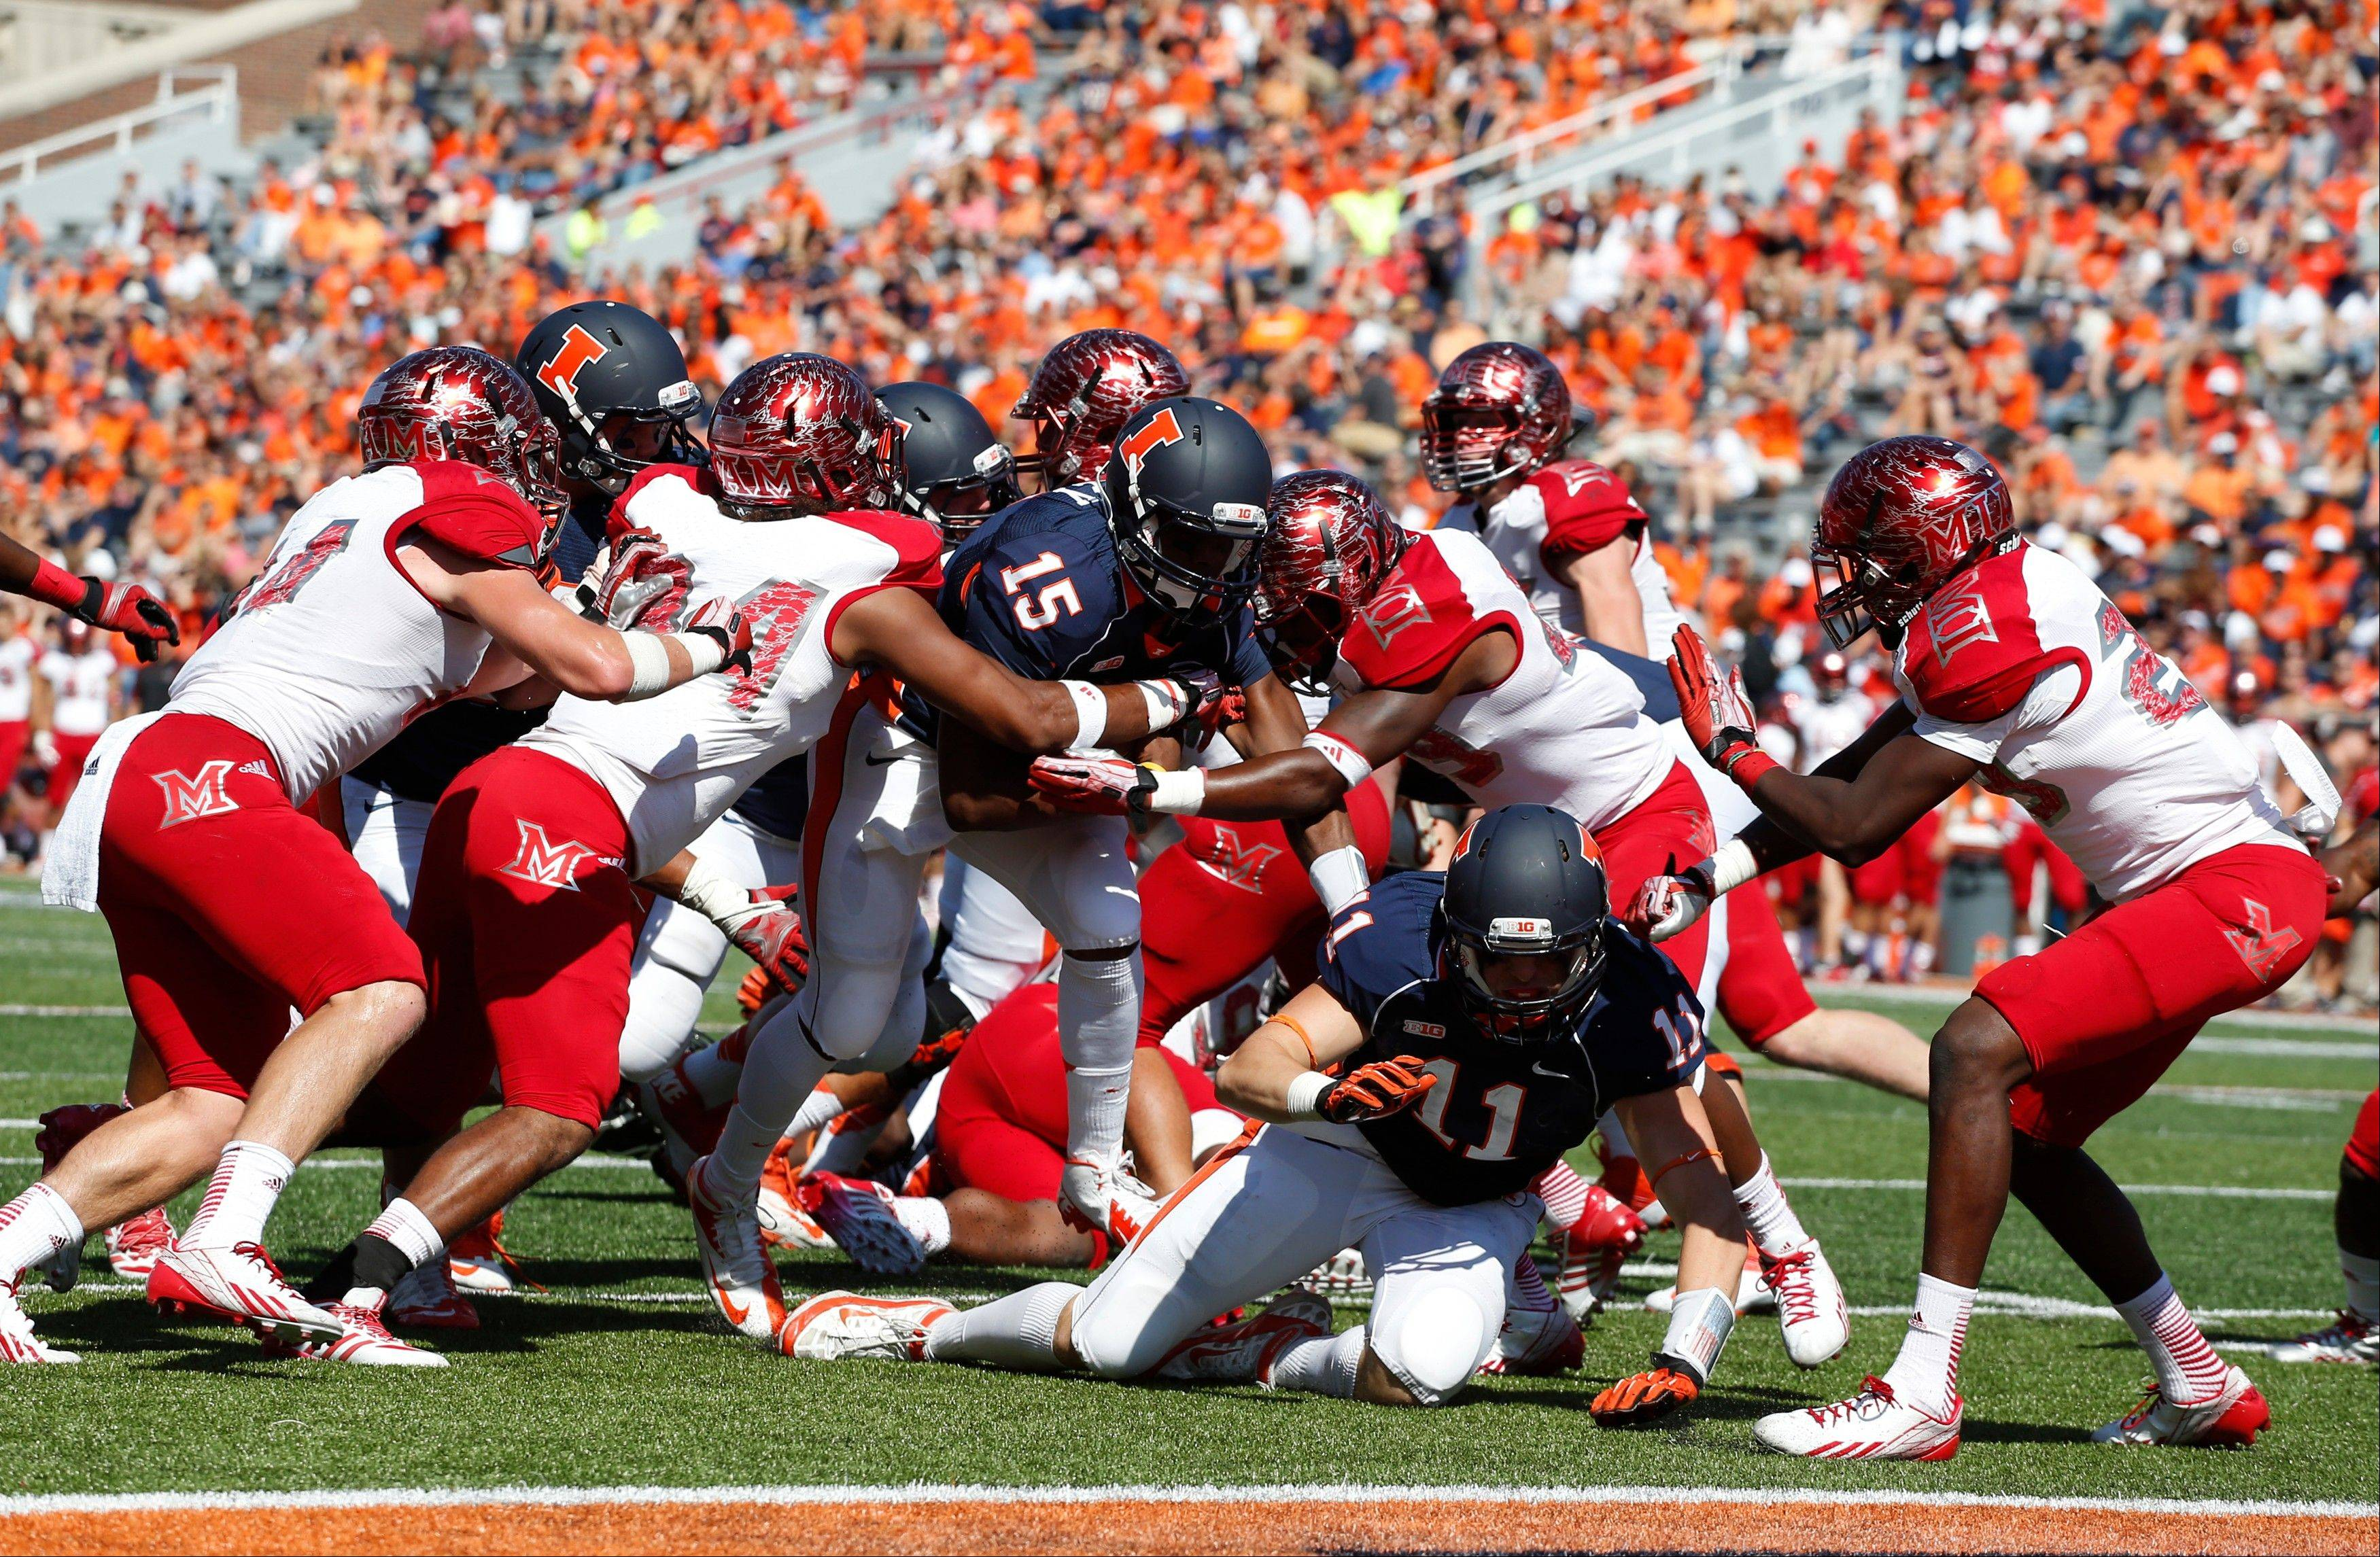 Illini backup QB named Big Ten freshman of week